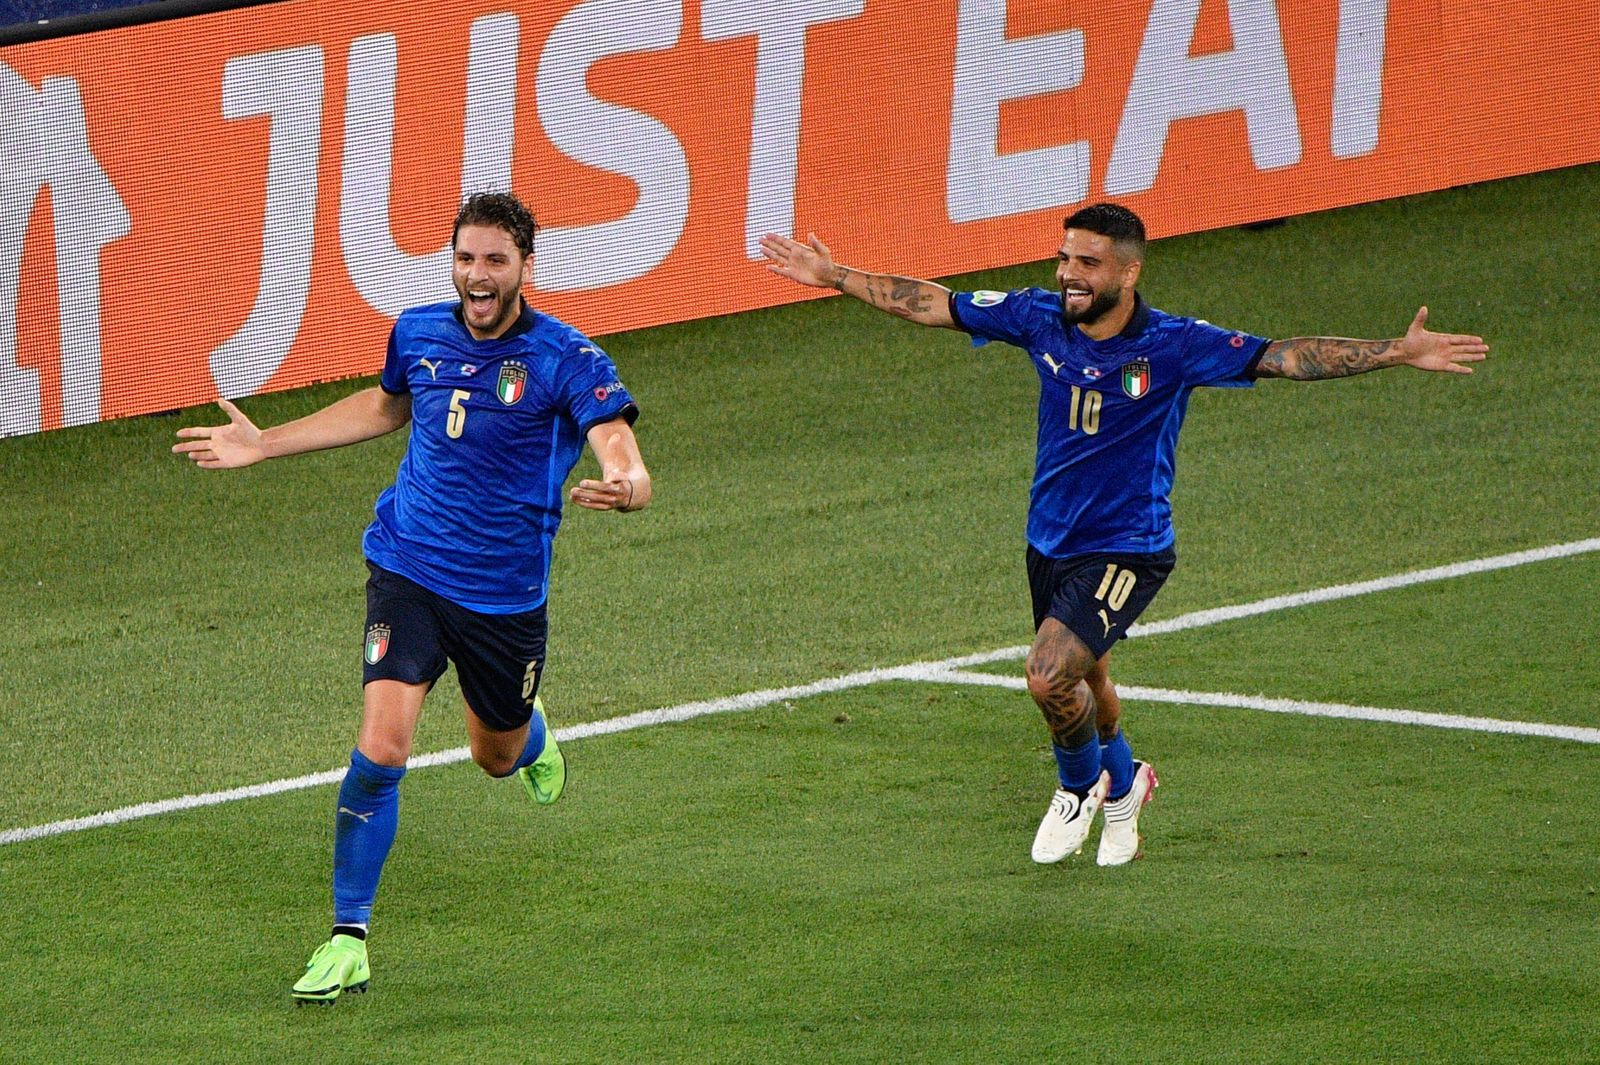 Manuel Locatelli of Italy celebrates after scoring goal 1-0 seen in action during the UEFA EURO, EM, Europameisterschaft